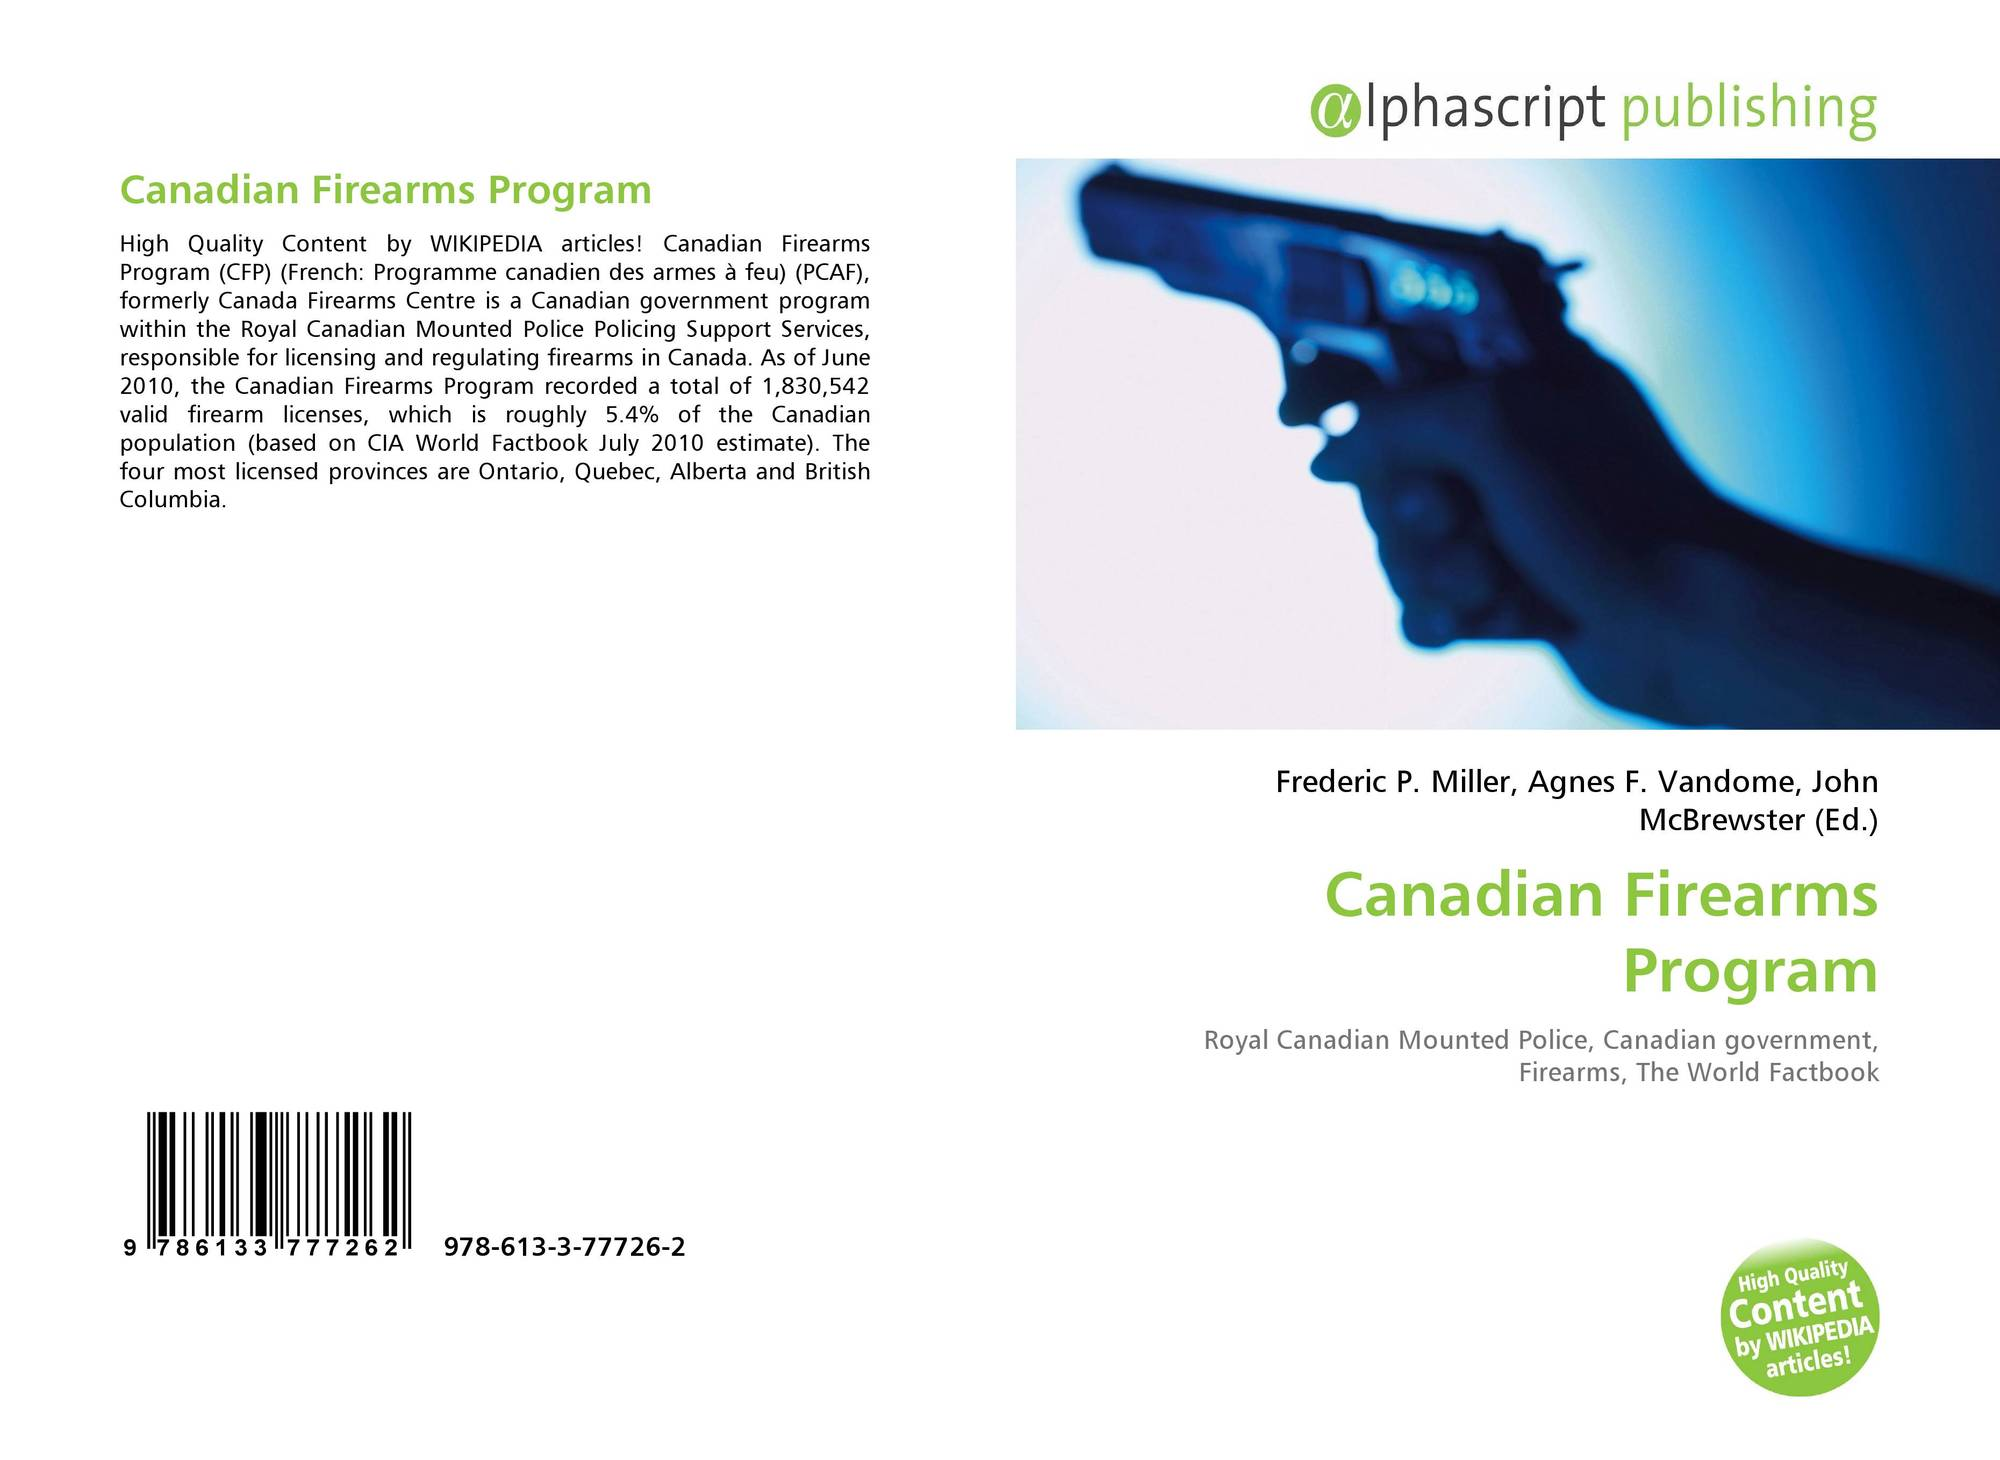 canadian firearms program Canadian firearms program - survey 2007 canadian firearms registry on-line conducted by the canada firearms centre general the canadian firearms registry on-line (cfro) system provides police officers access to firearms licence and registration information in the canadian firearms information system through an interface called the canadian.